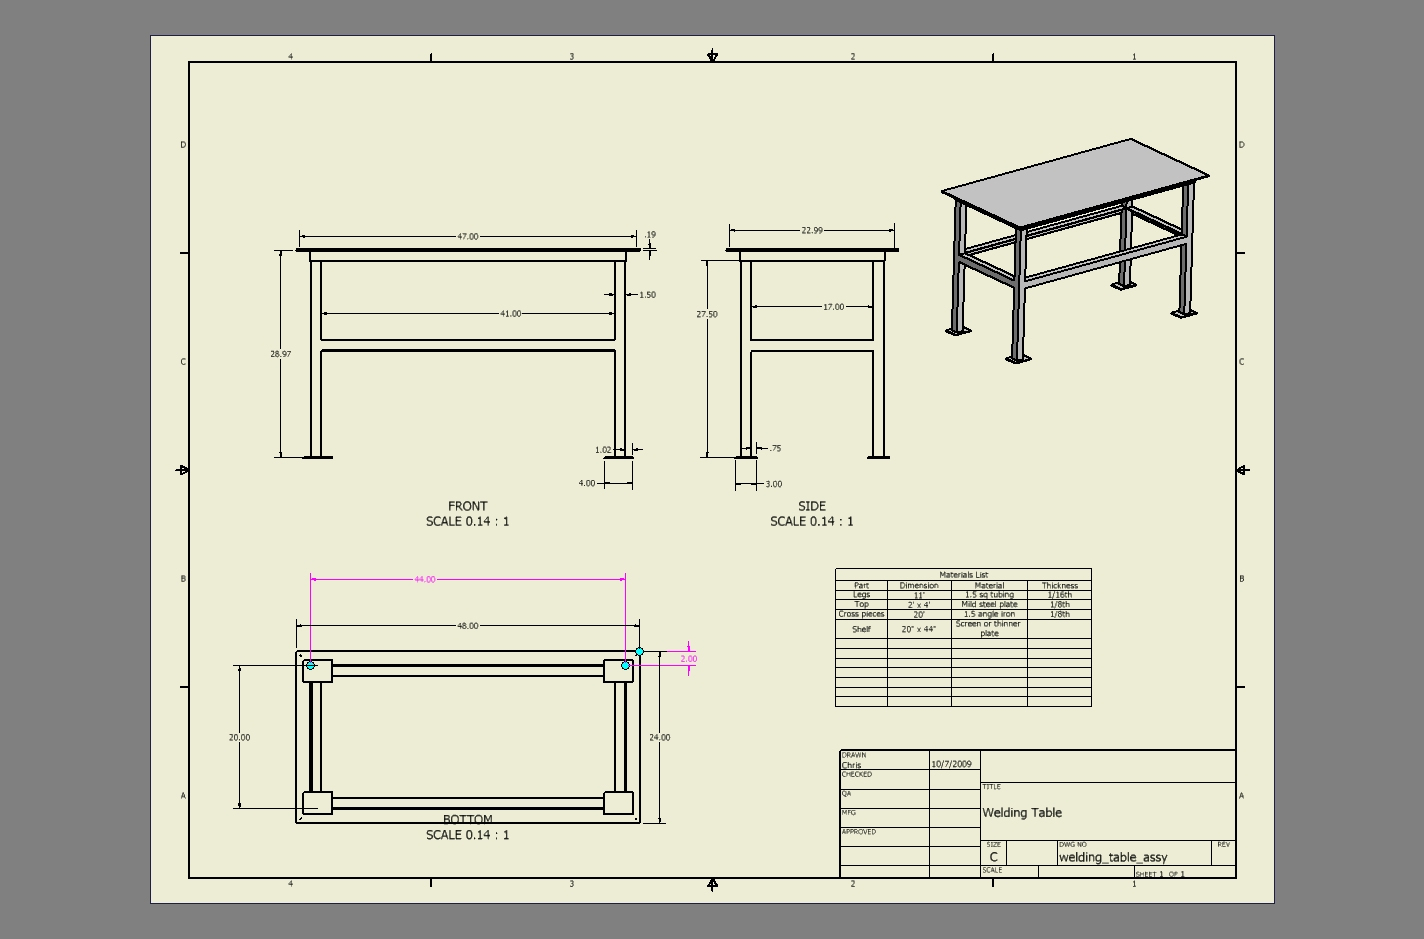 Welding Table Designs round welding table Welding Table Design Welding Table Design Review Weldingweb Welding Forum For Pros And Enthusiasts This Used